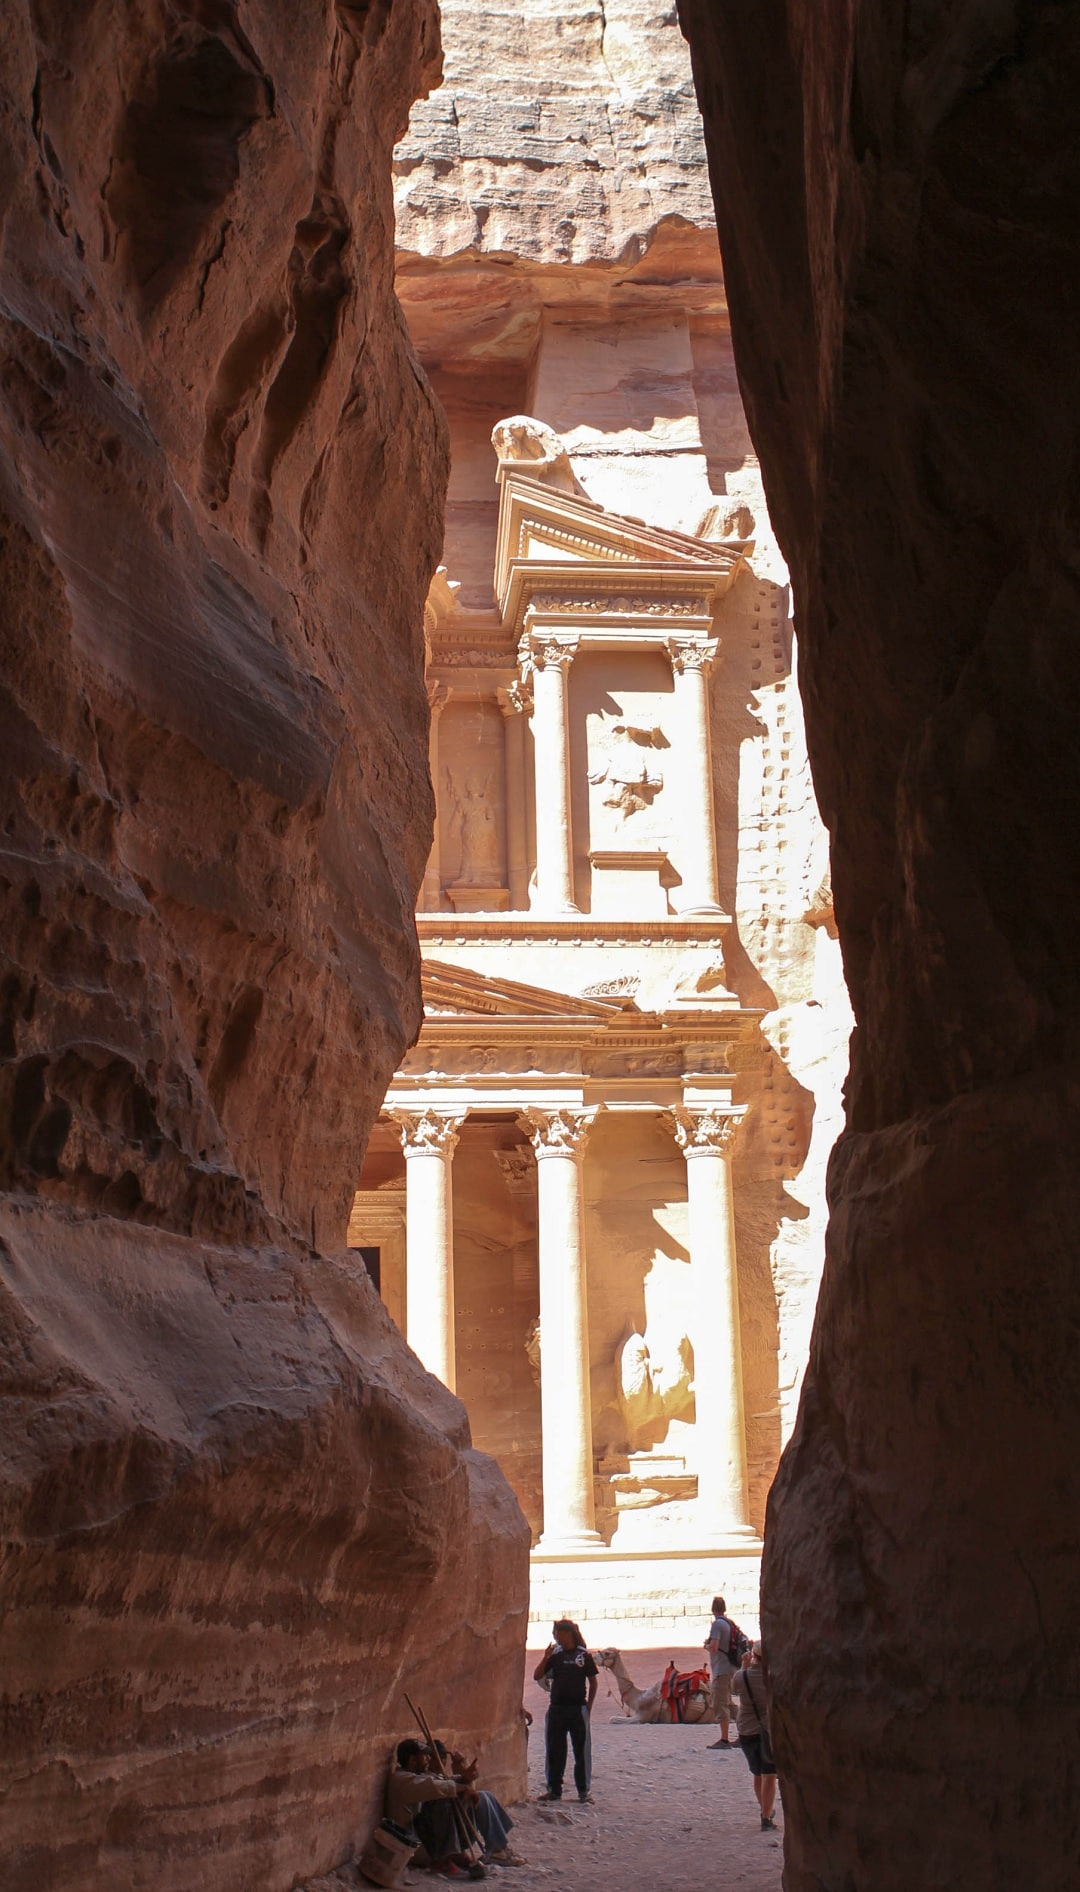 As you exit the Siq, the treasury appears before you